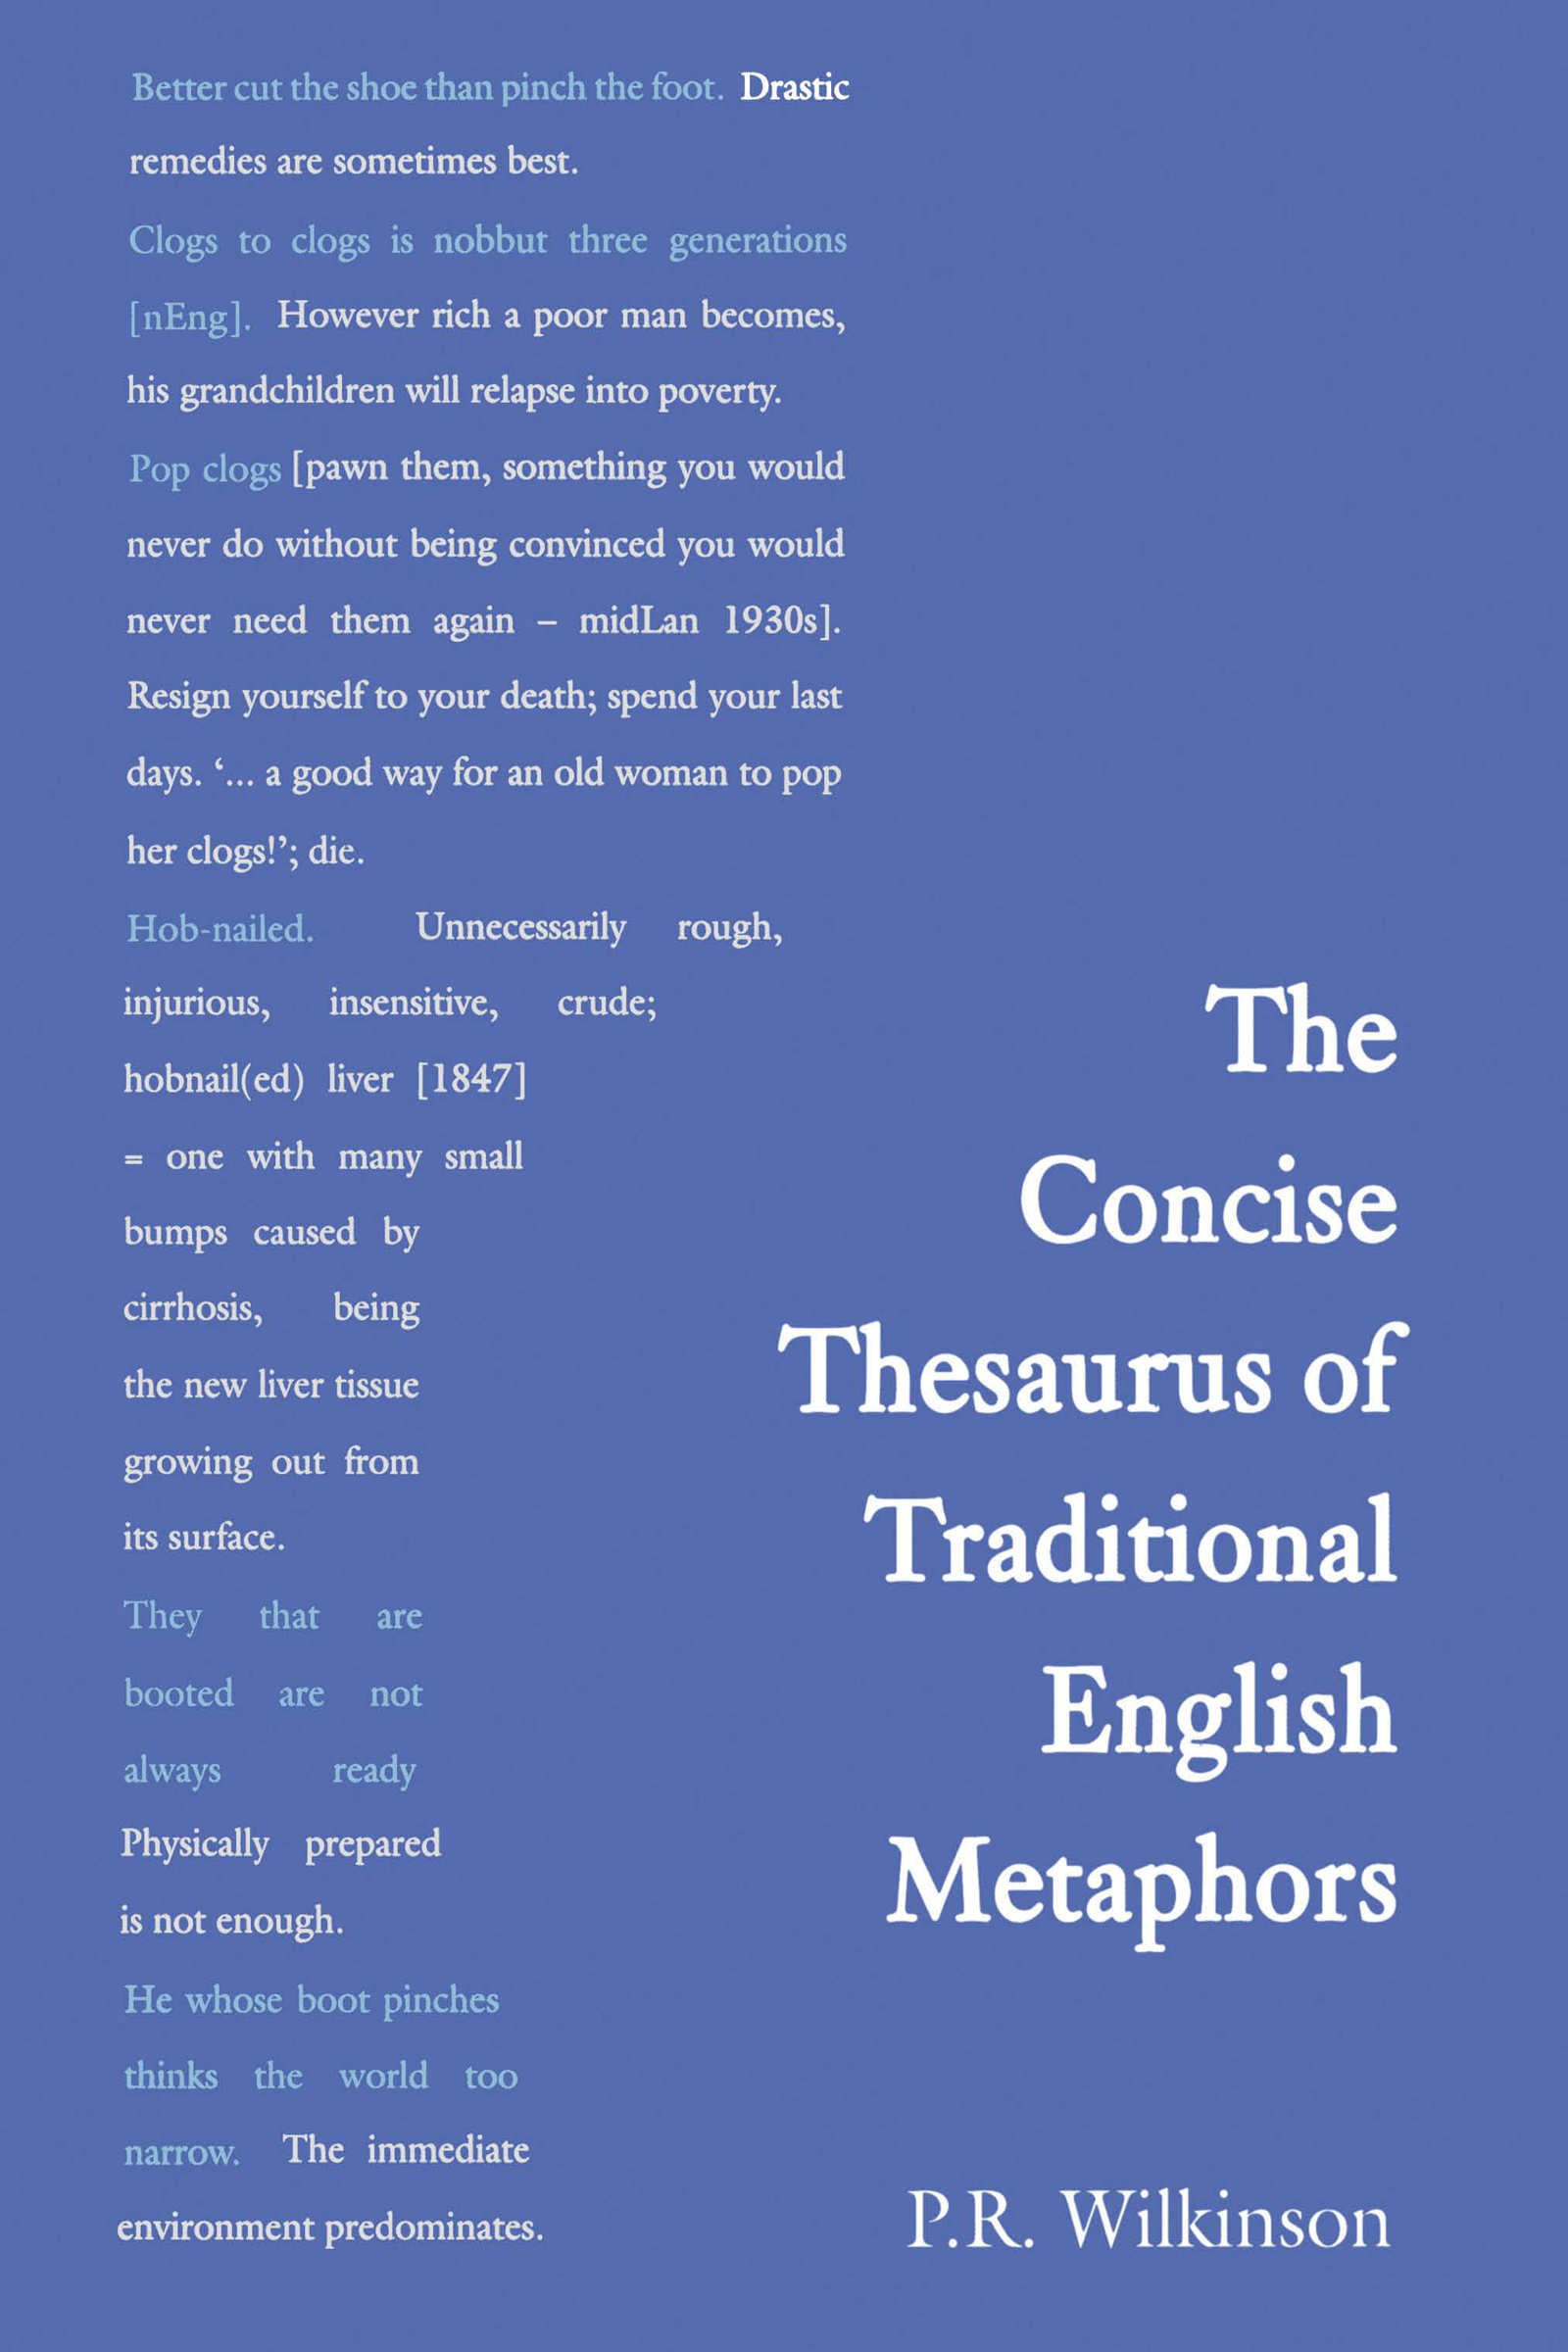 Concise Thesaurus of Traditional English Metaphors